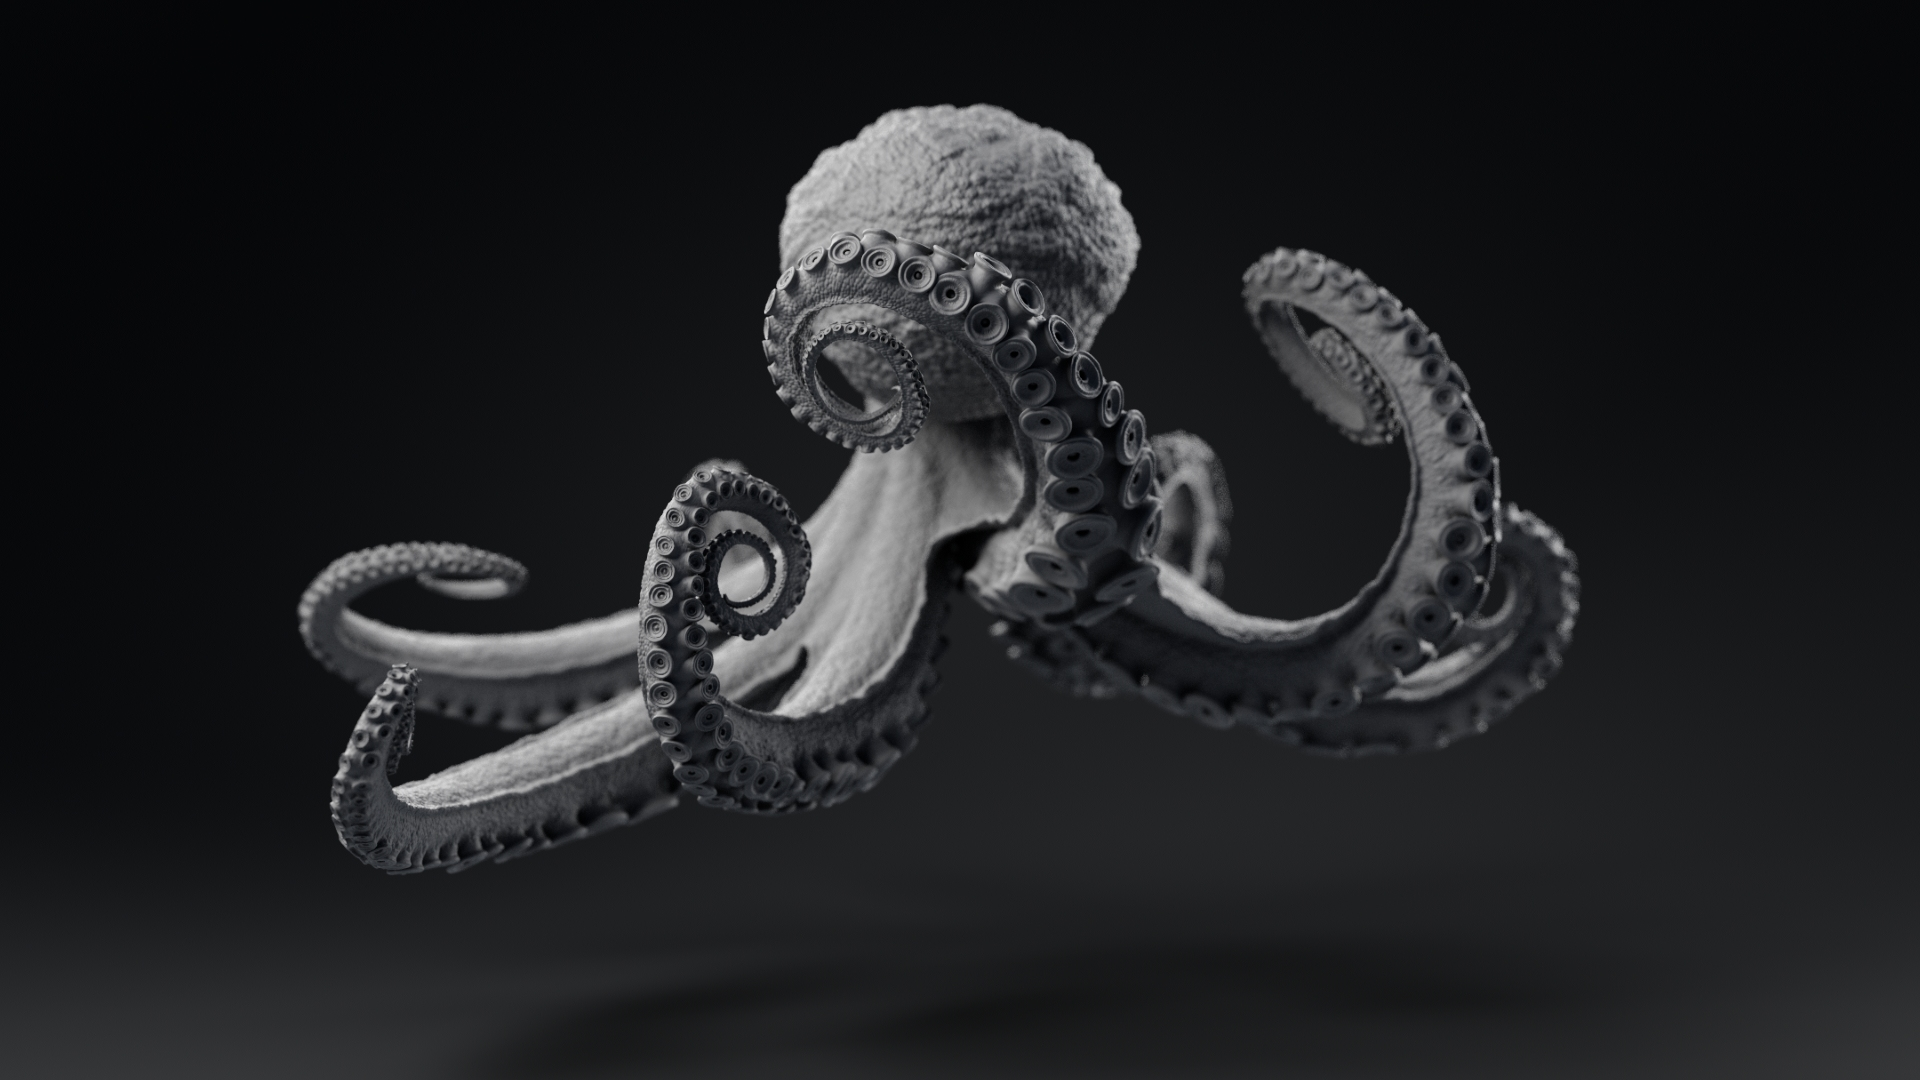 Octopus_model_TurntableFrames_Grey_ZbrushCentral_v021_0061.jpg